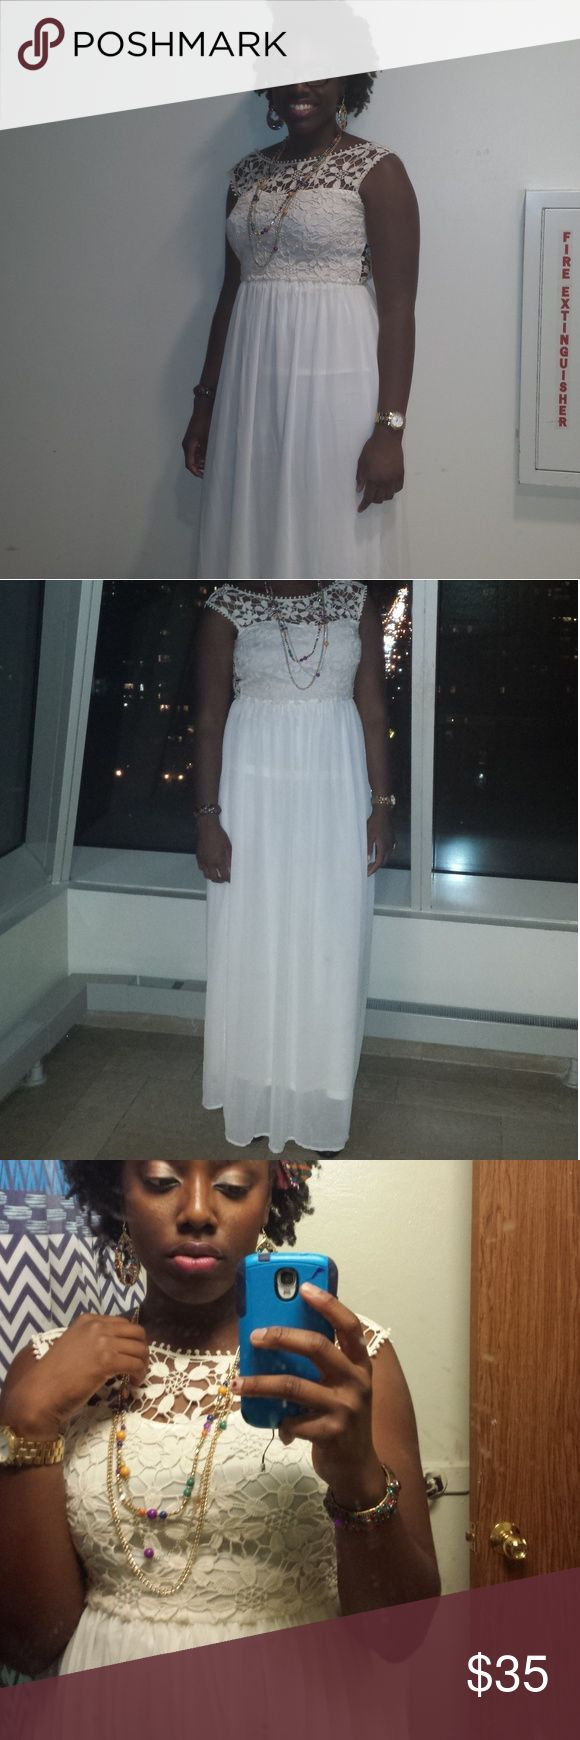 Club L Cream Maxi Dress US Size 10 UK Size 14 Maxi length cream dress from Club L with floral lace detailing. With heels I was 6' tall and the dress went down to my feet. Definitely a dress fit for any occasion Club L Dresses Maxi